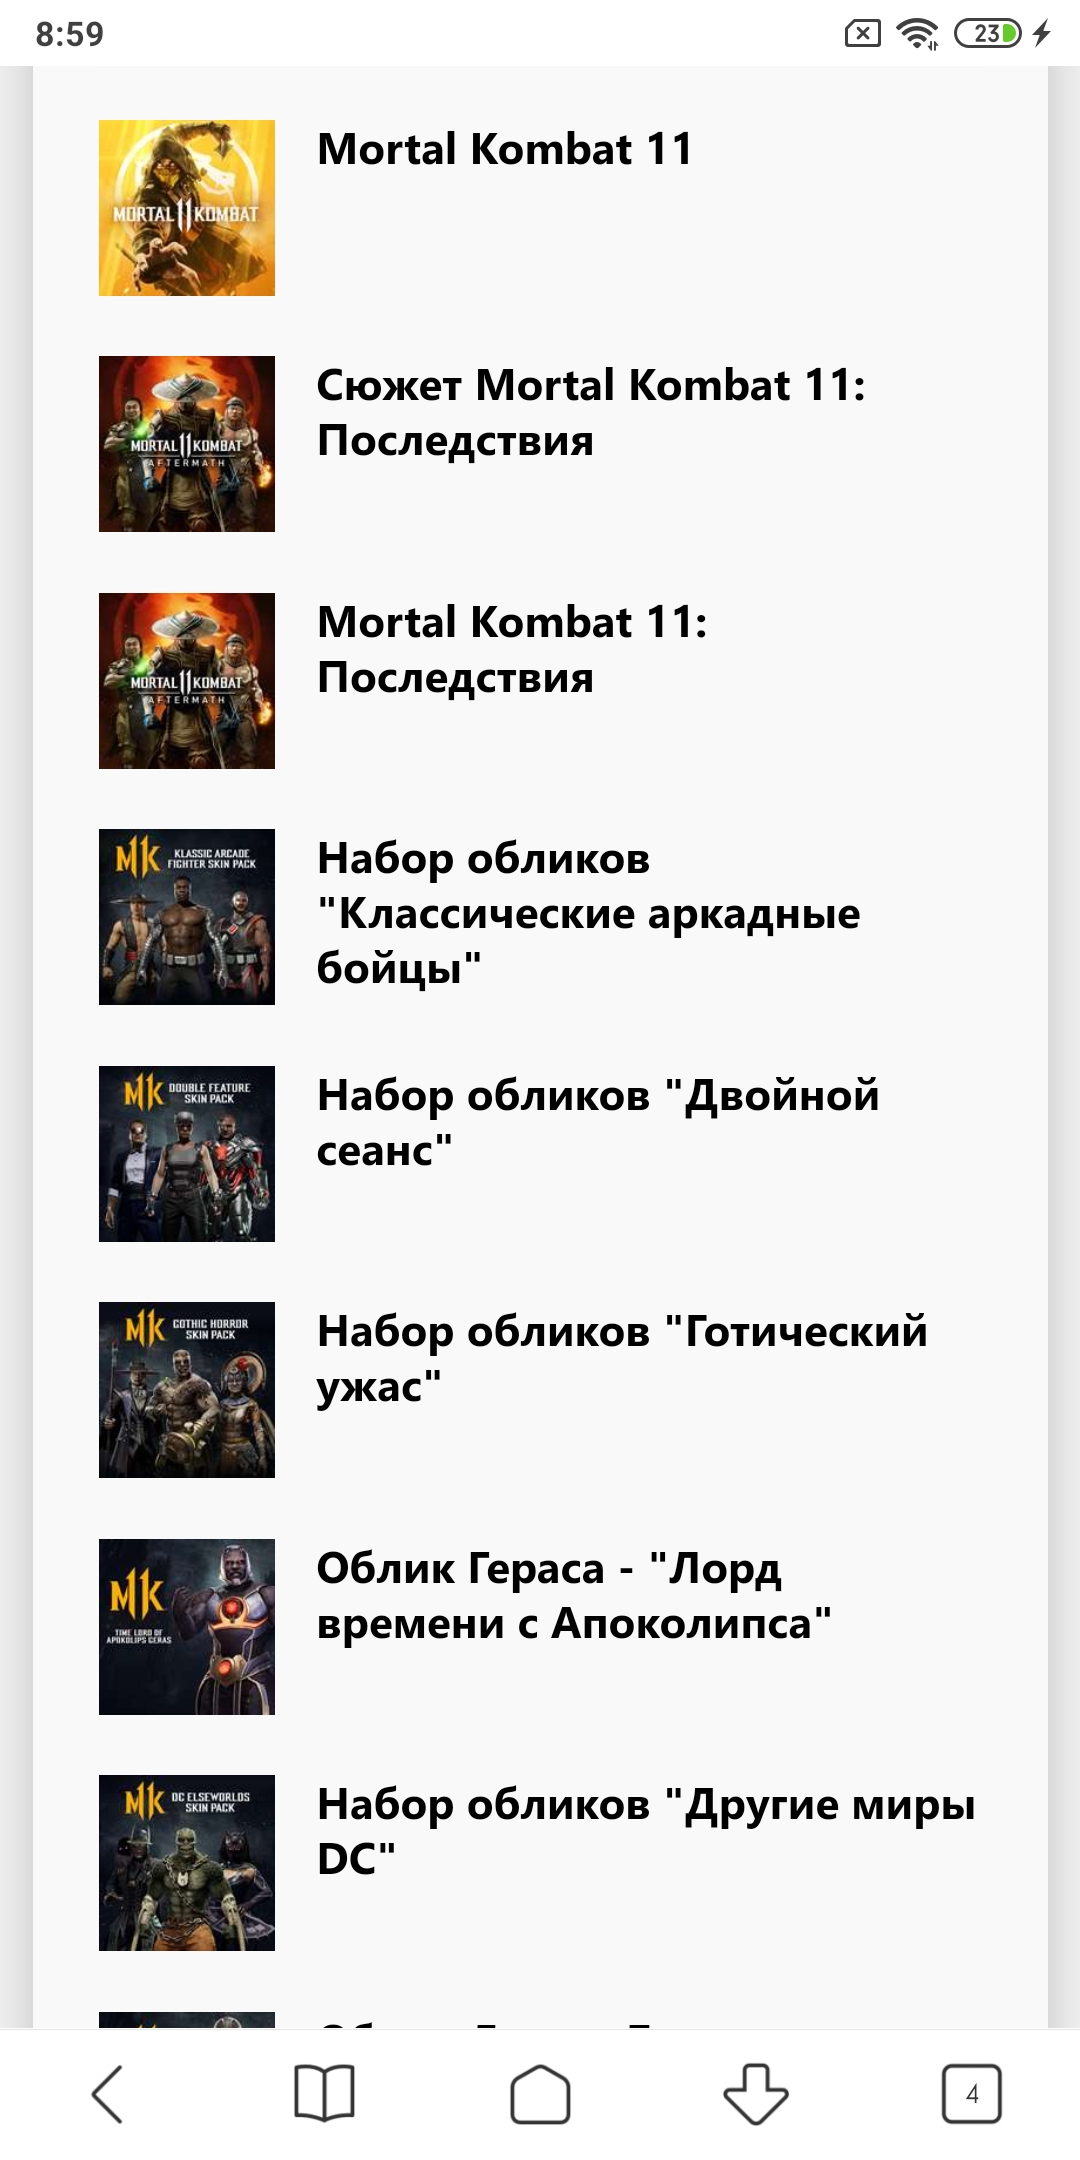 MORTAL KOMBAT 11 AFTERMATH KOLLECTION XBOX ONE + SERIES